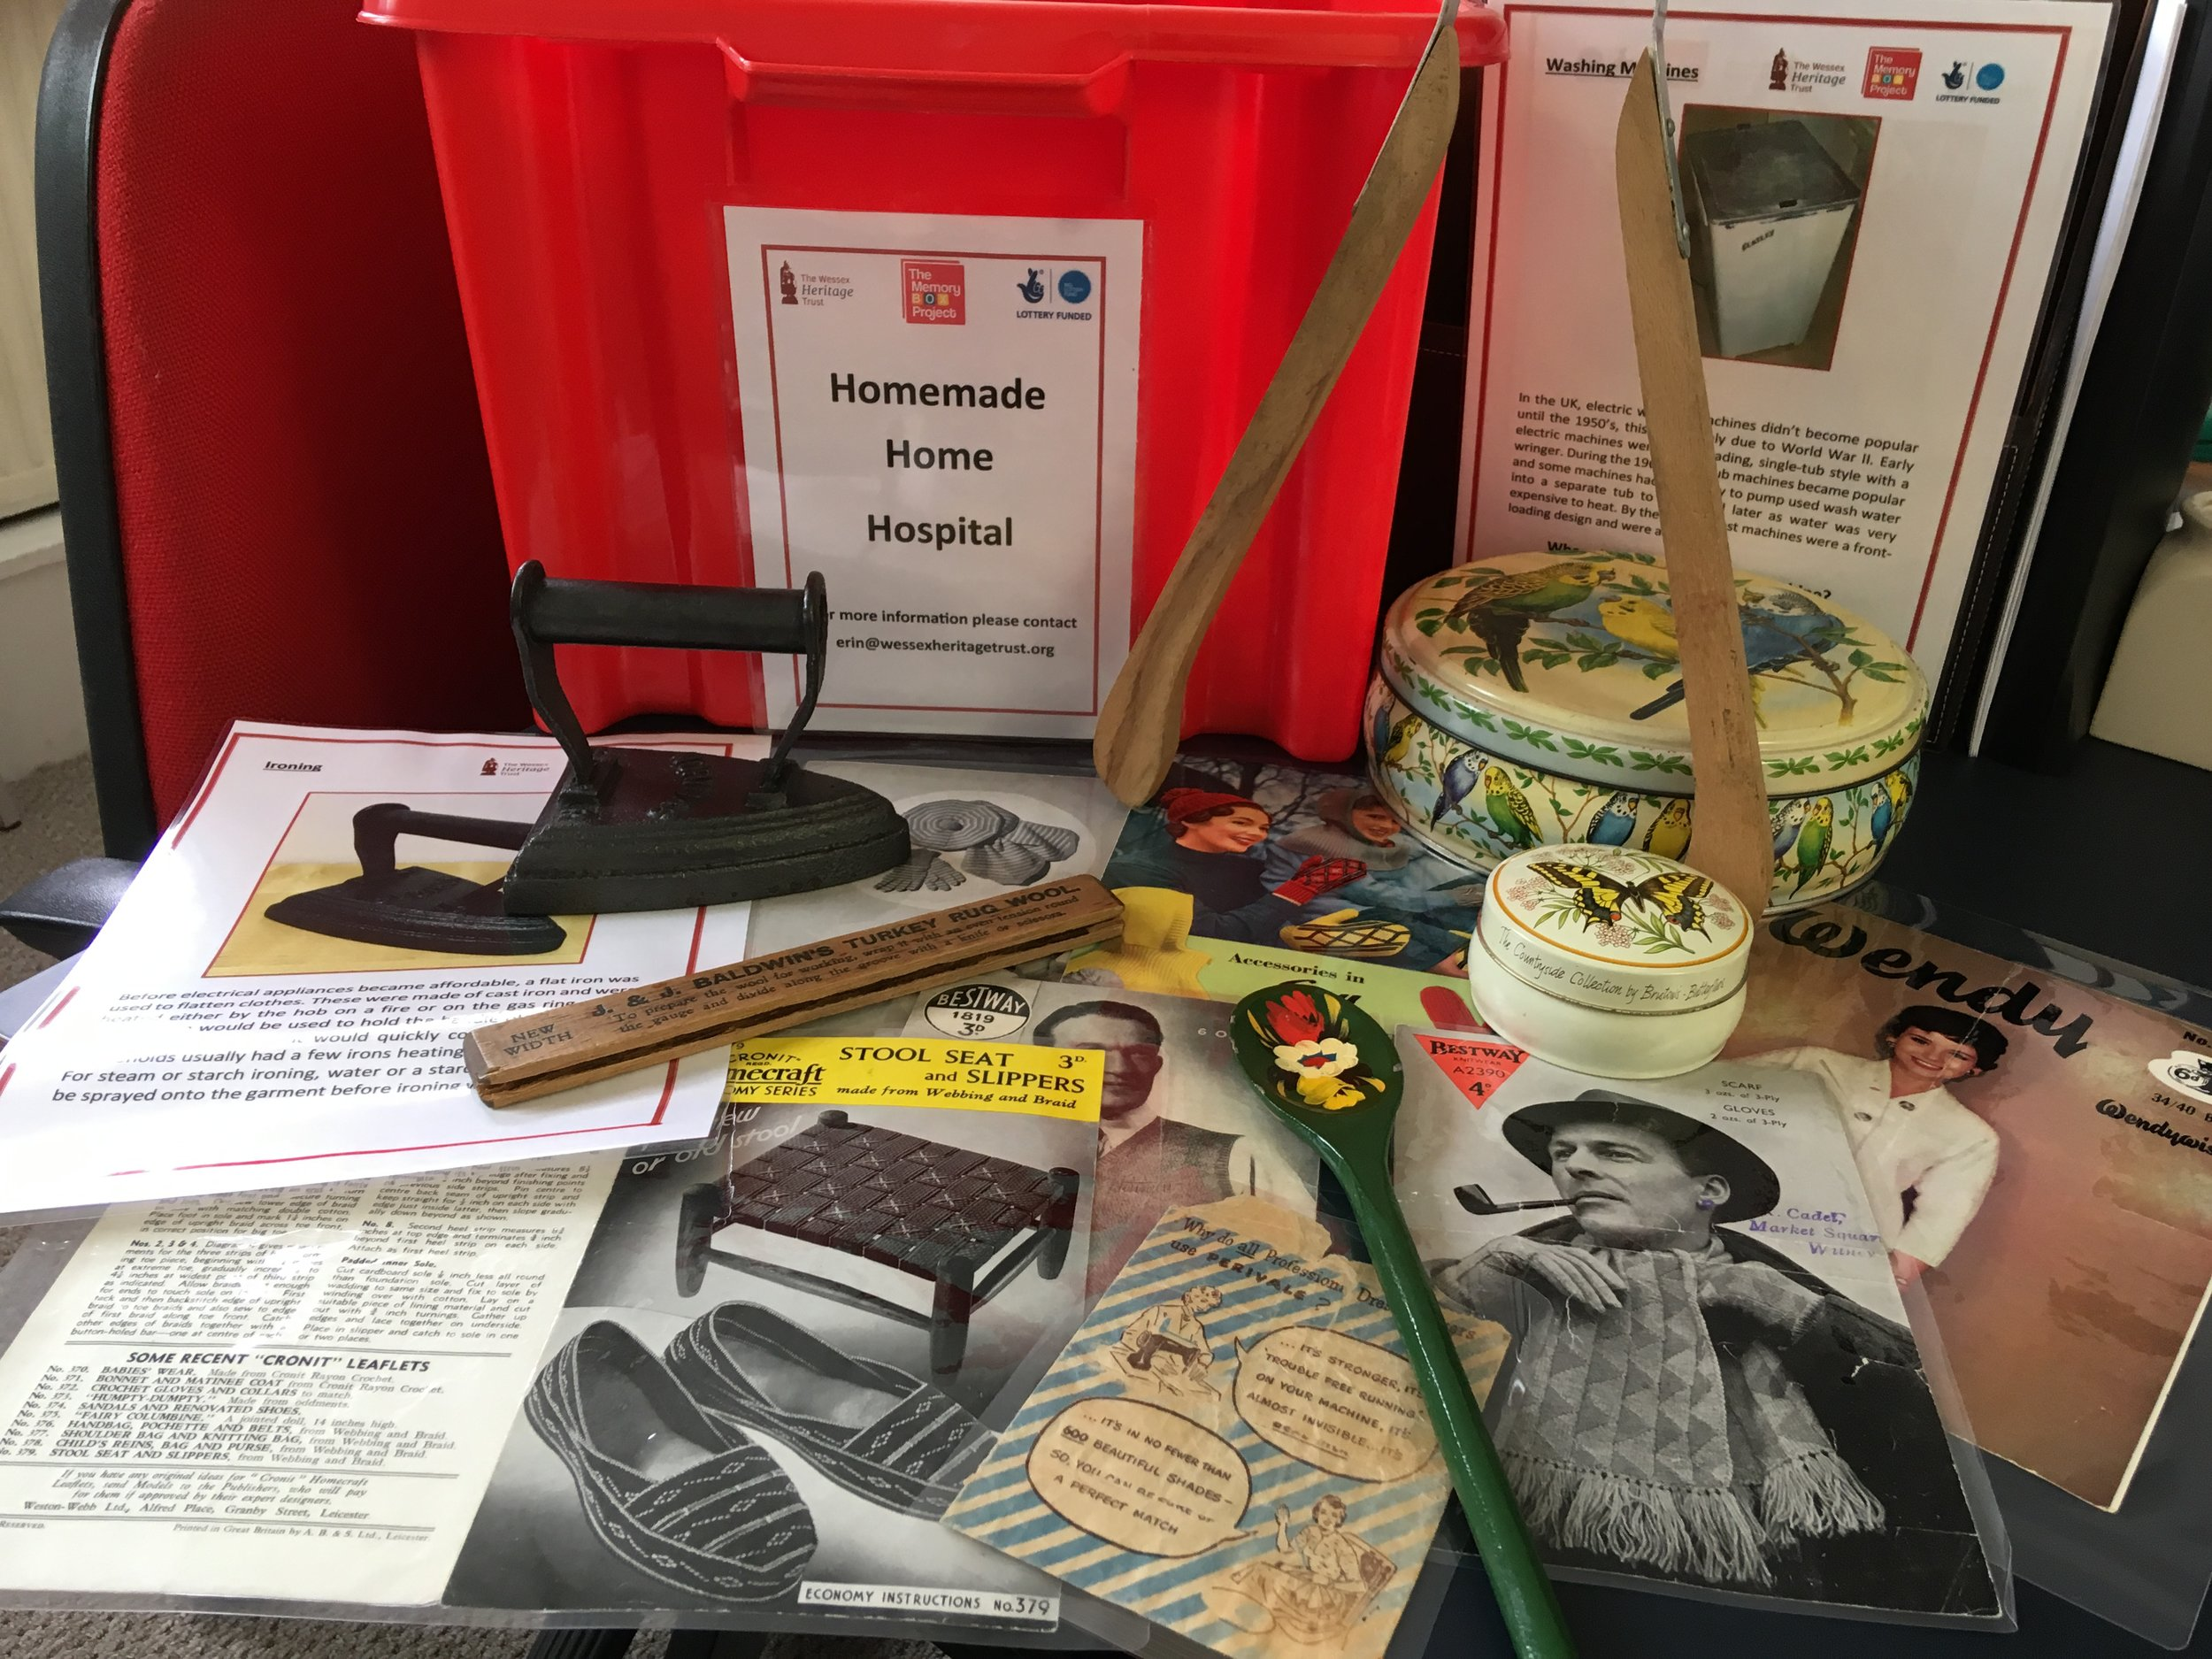 'Homemade Home'  is one of the new Memory Box themes for 2019